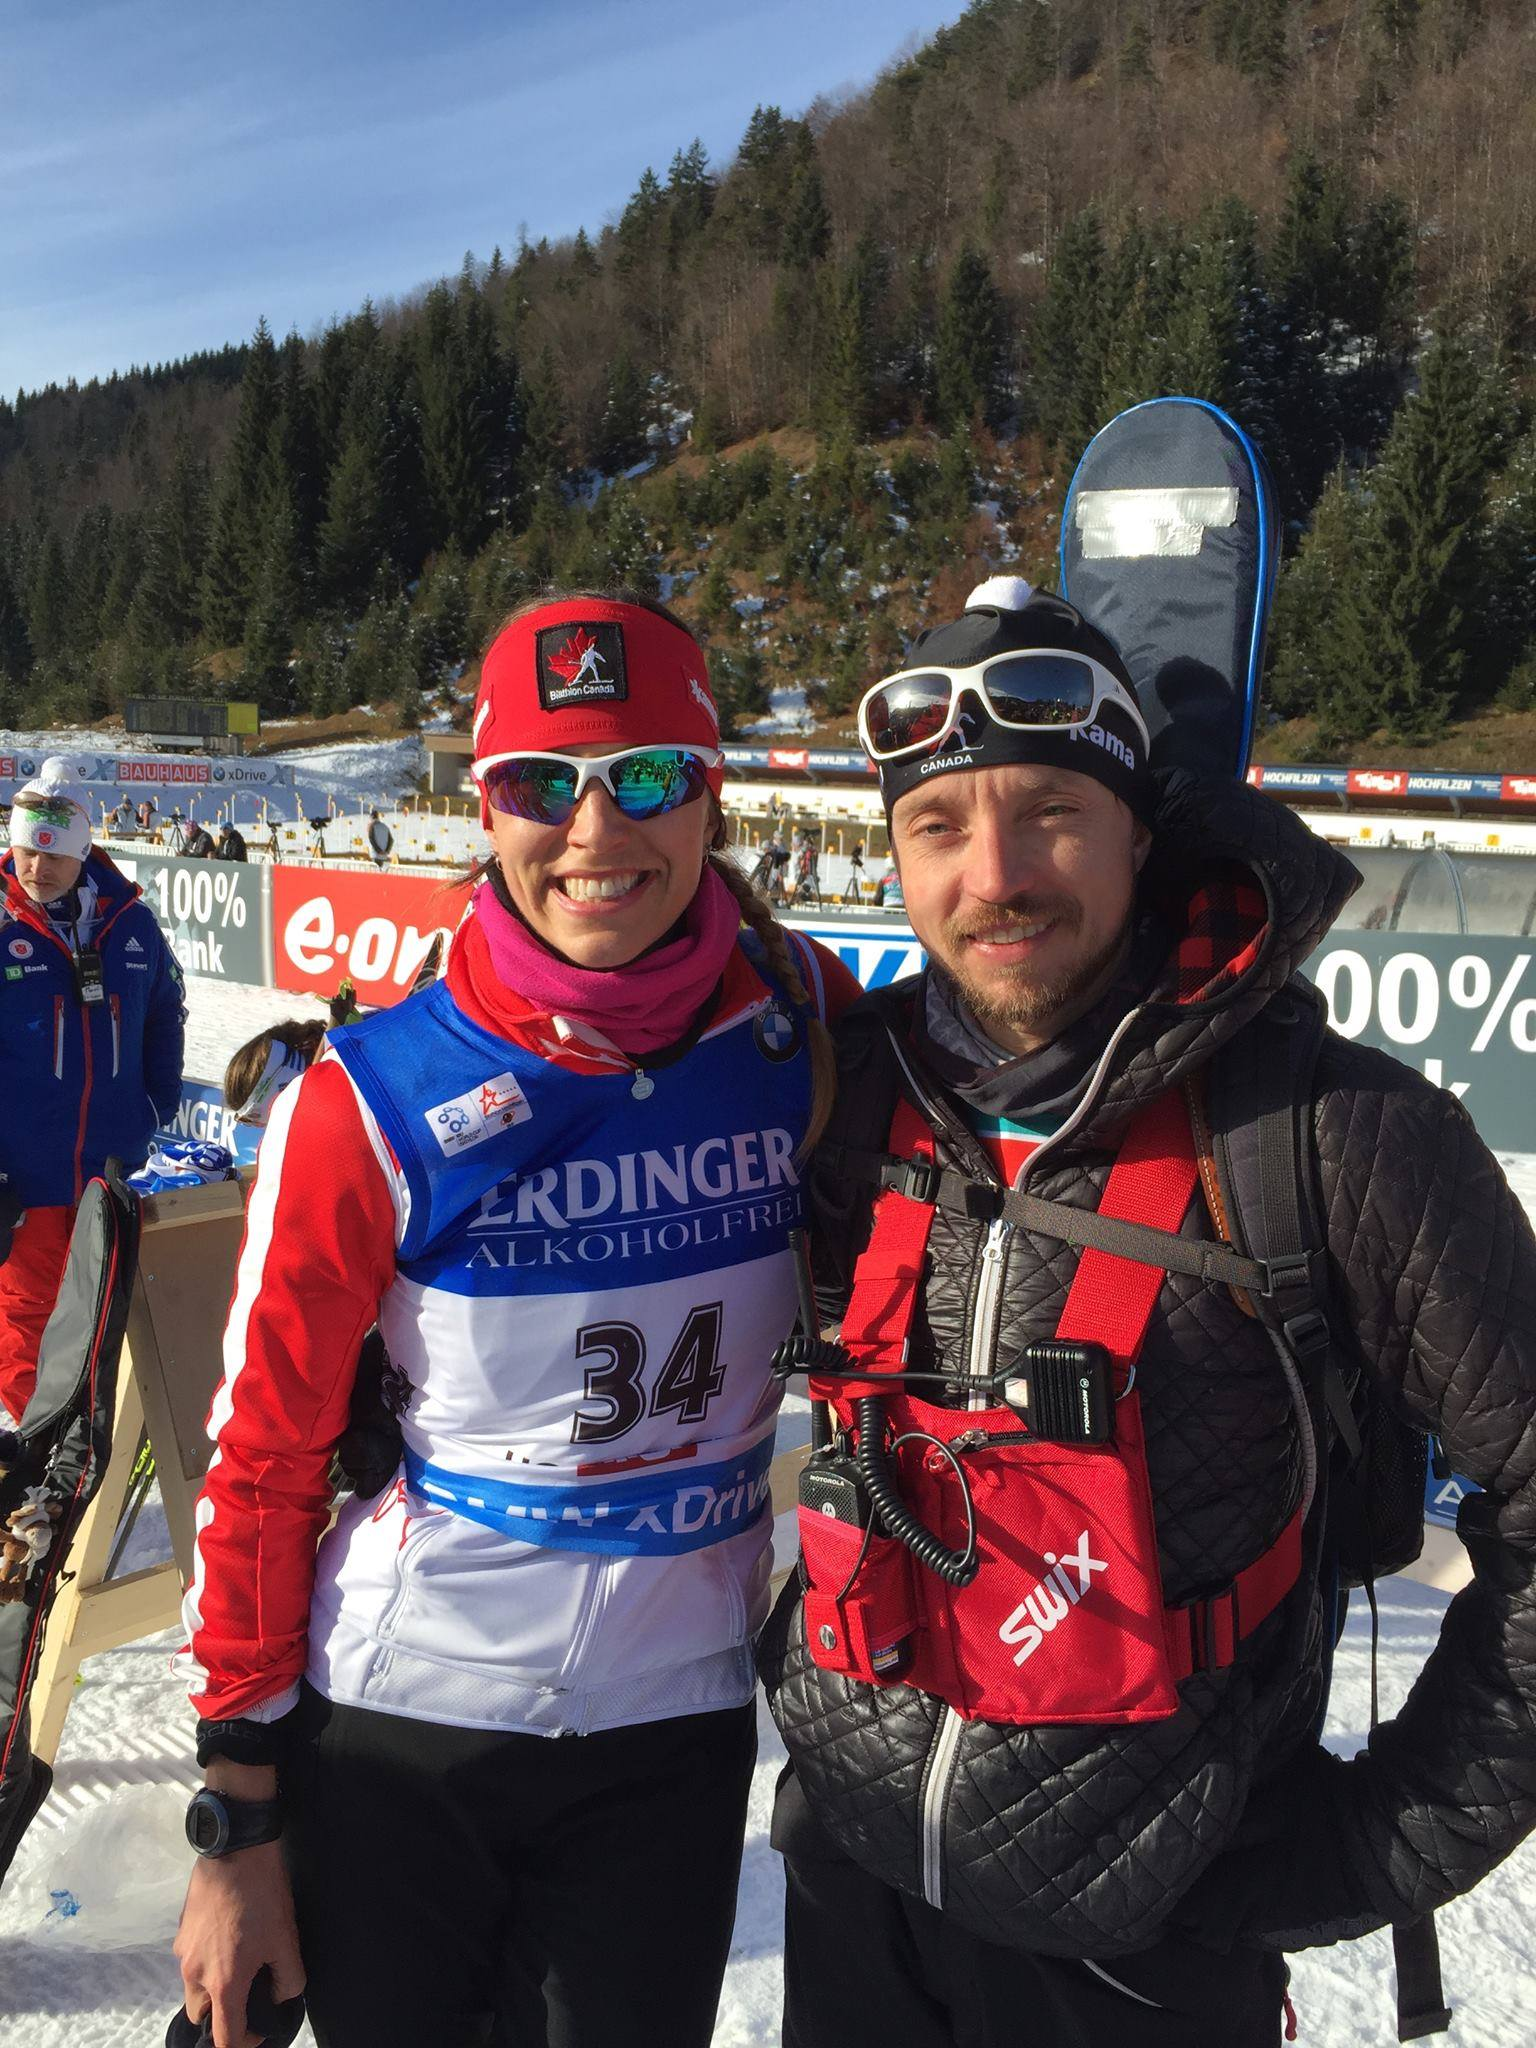 https://fasterskier.com/wp-content/blogs.dir/1/files/2014/12/Rosanna-Crawford-with-coach-Roddy-Ward.Such-a-fun-race-today-I-moved-from-34th-to-5th-for-a-new-personal-best-with-19-for-20-shooting.jpg